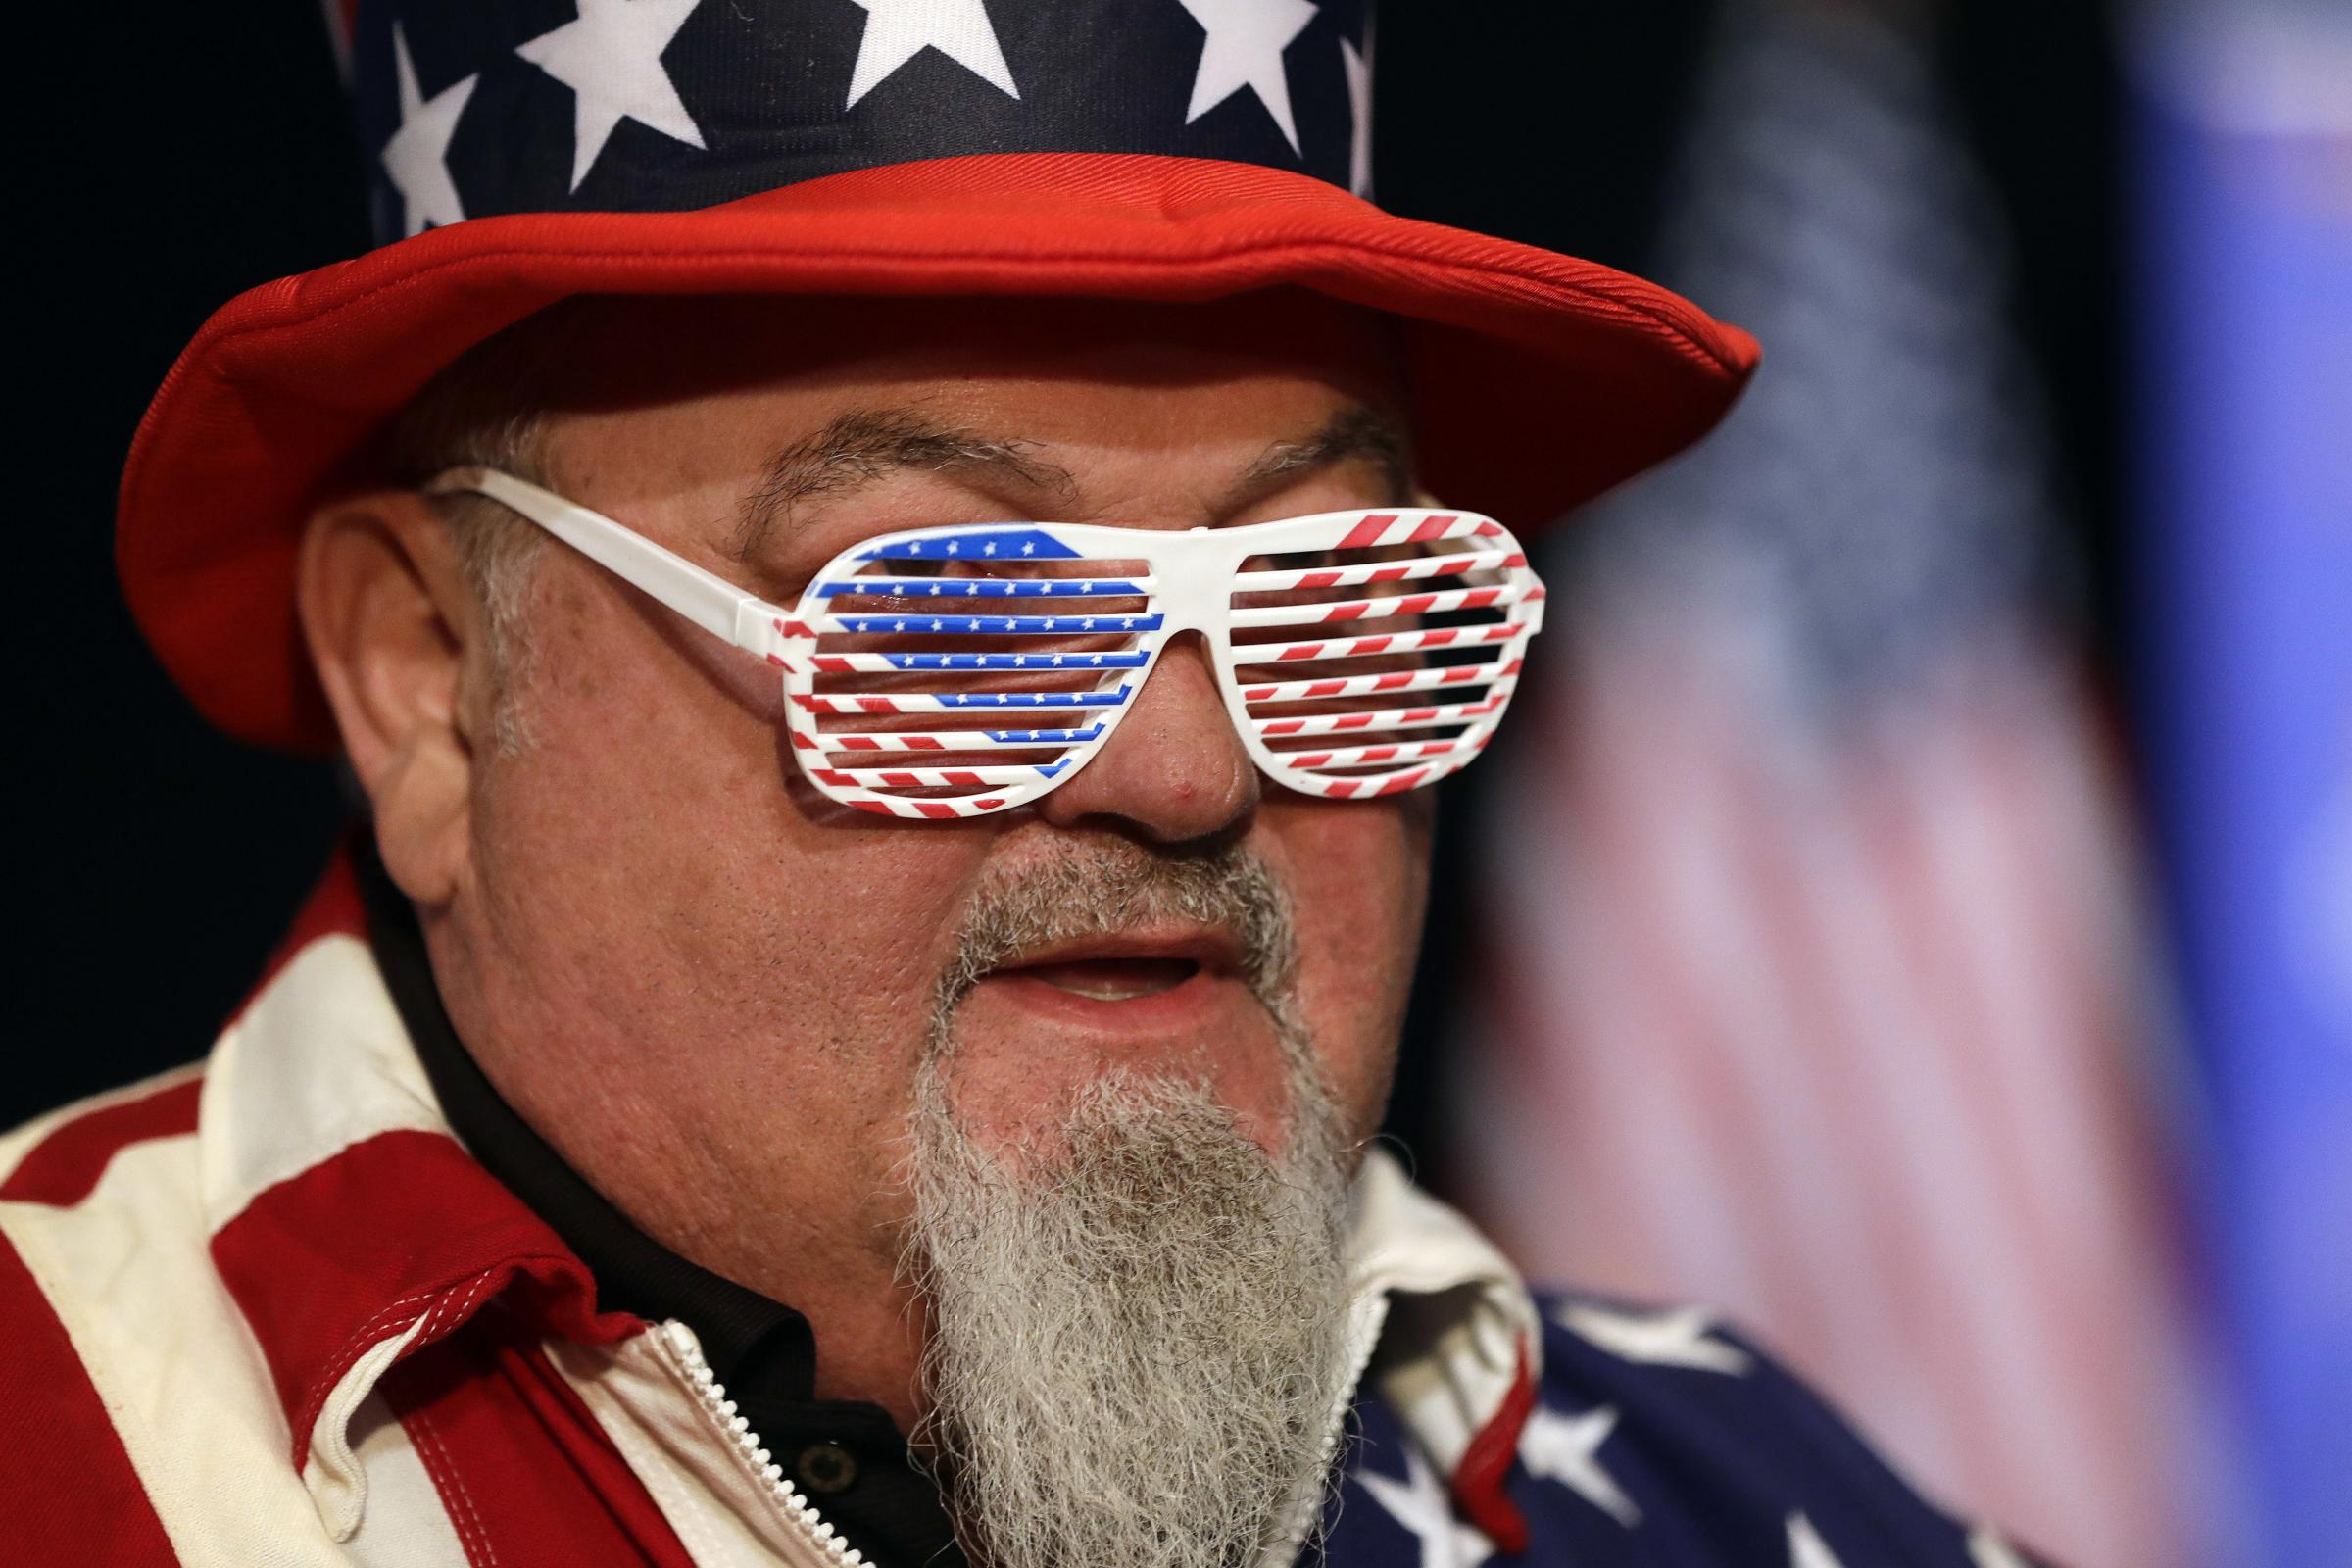 In Pictures: Costumes and crossed fingers as America heads to the polls